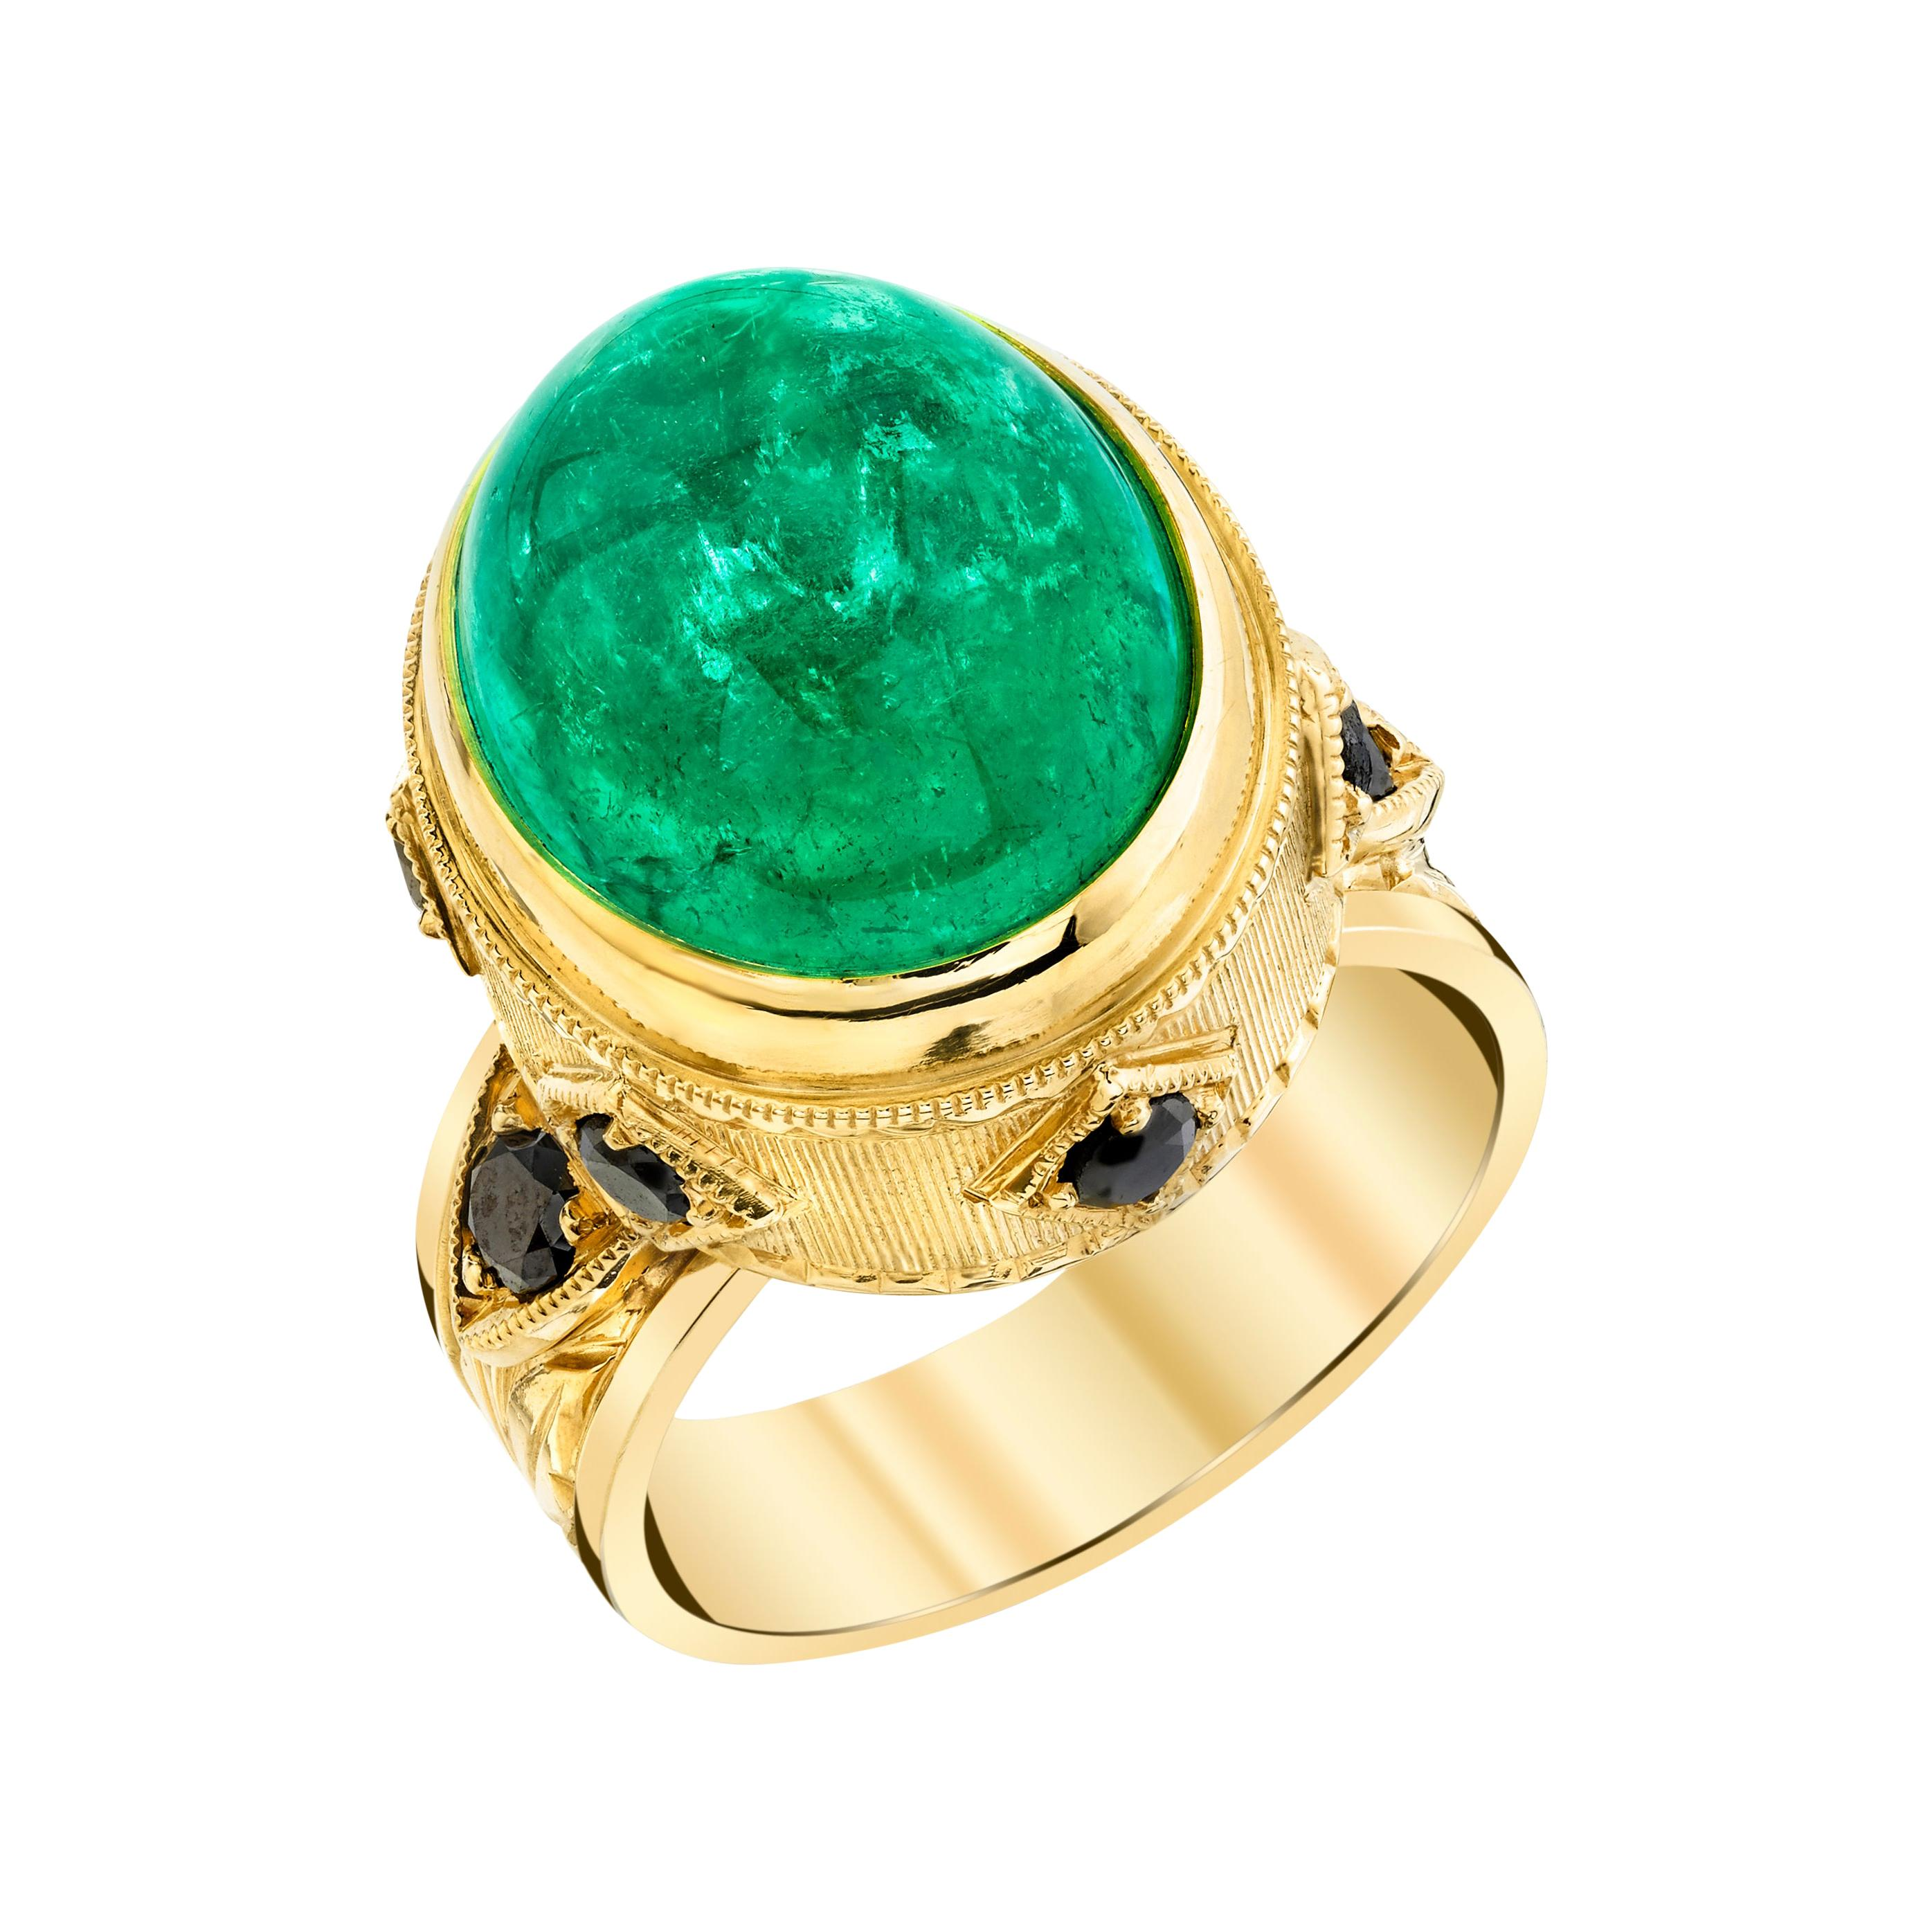 11.91 Carat Emerald Cabochon, Black Diamond Yellow Gold Dome Engraved Bezel Ring